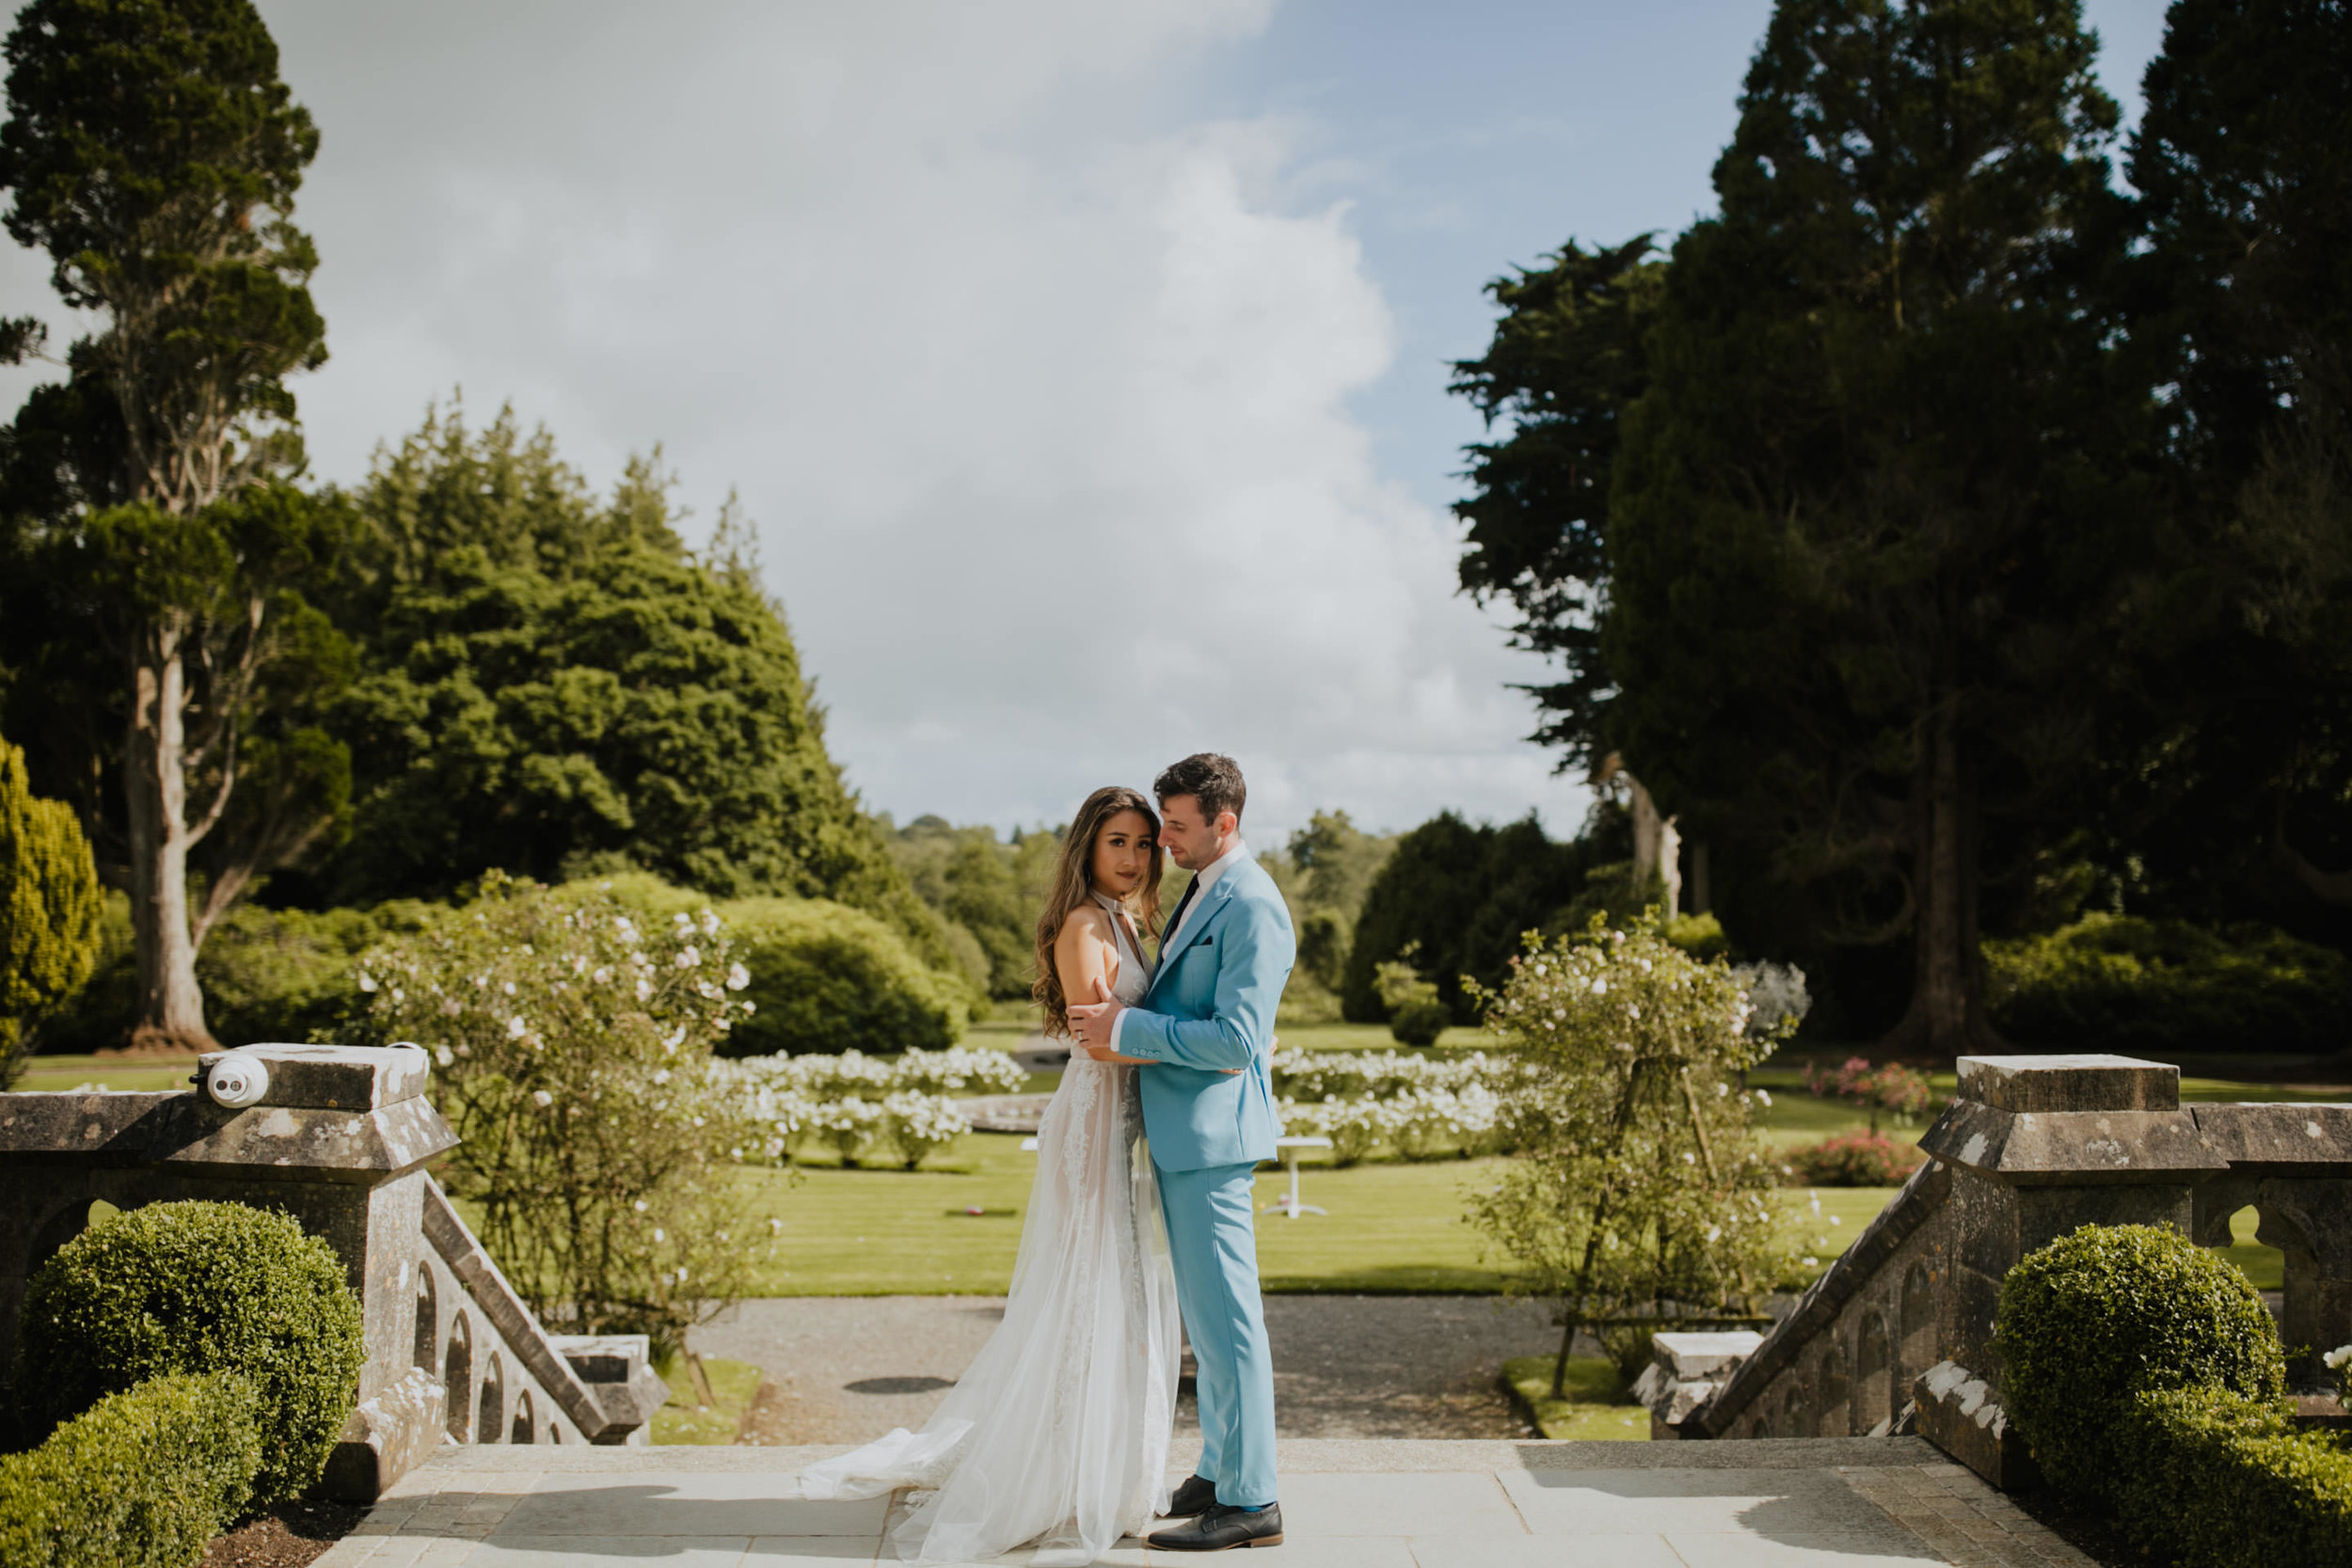 d&c_markree_castle_sligo_wedding_photographer_livia_figueiredo_13.jpg